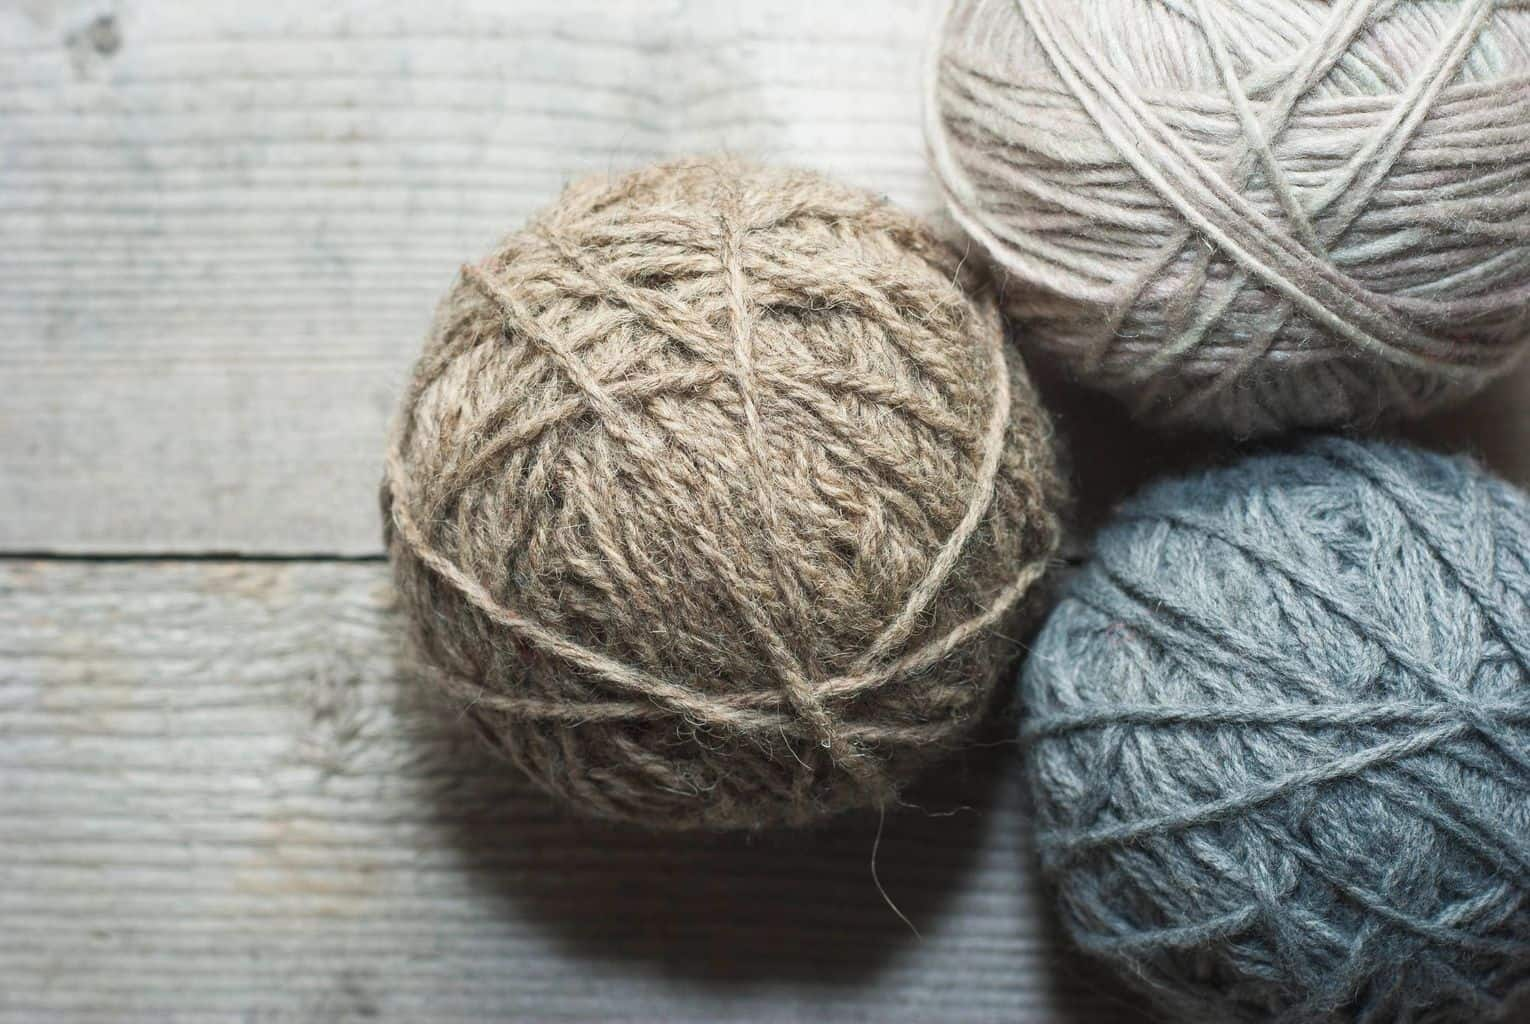 What is organic yarn? Find this out and much more at RescuedPawDesigns